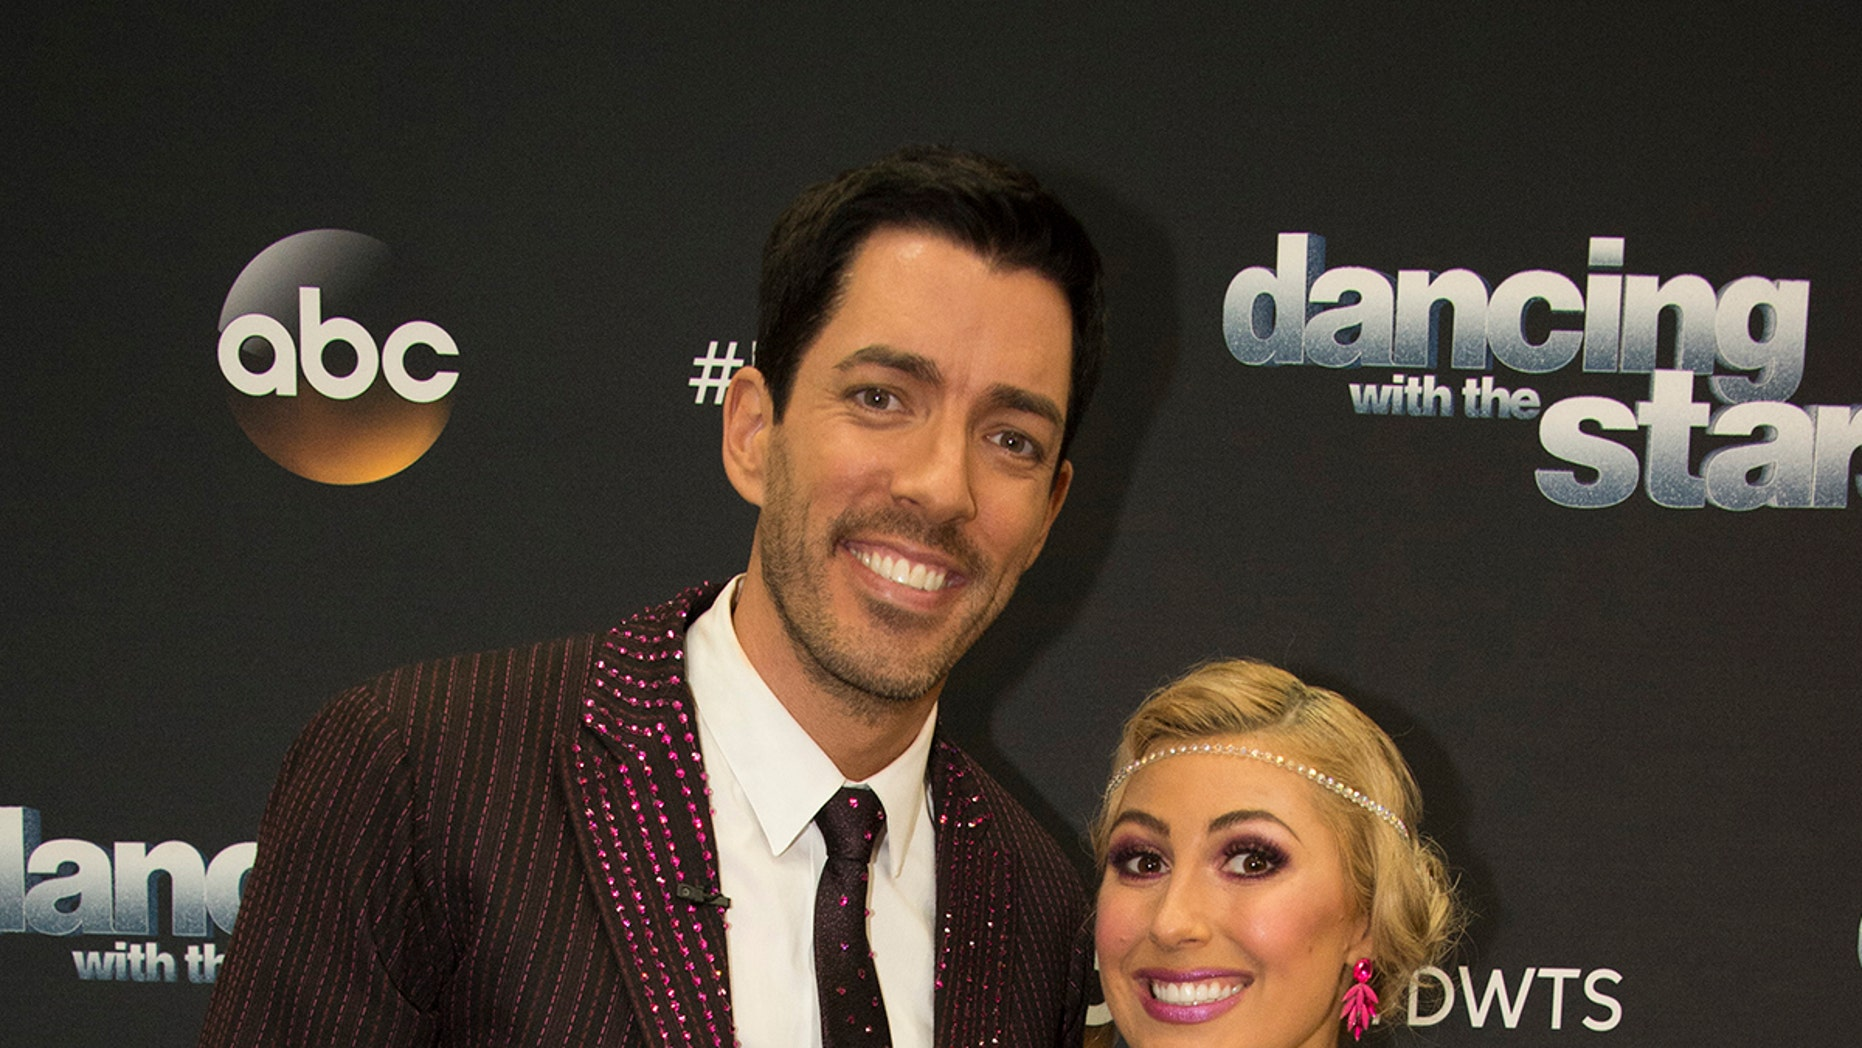 """DANCING WITH THE STARS - """"Episode 2502"""" - The 13 celebrities dance to some of the most classic ballroom styles that everyone knows and loves, as Ballroom Night comes to """"Dancing with the Stars,"""" live, MONDAY, SEPTEMBER 25 (8:00-10:01 p.m. EDT), on The ABC Television Network. Each couple will perform timeless favorites, including a quickstep, waltz, tango, foxtrot or Viennese waltz, vying for America's vote. At the end of the night, the first elimination of the season will take place. (ABC/Eric McCandless)DREW SCOTT, EMMA SLATER"""